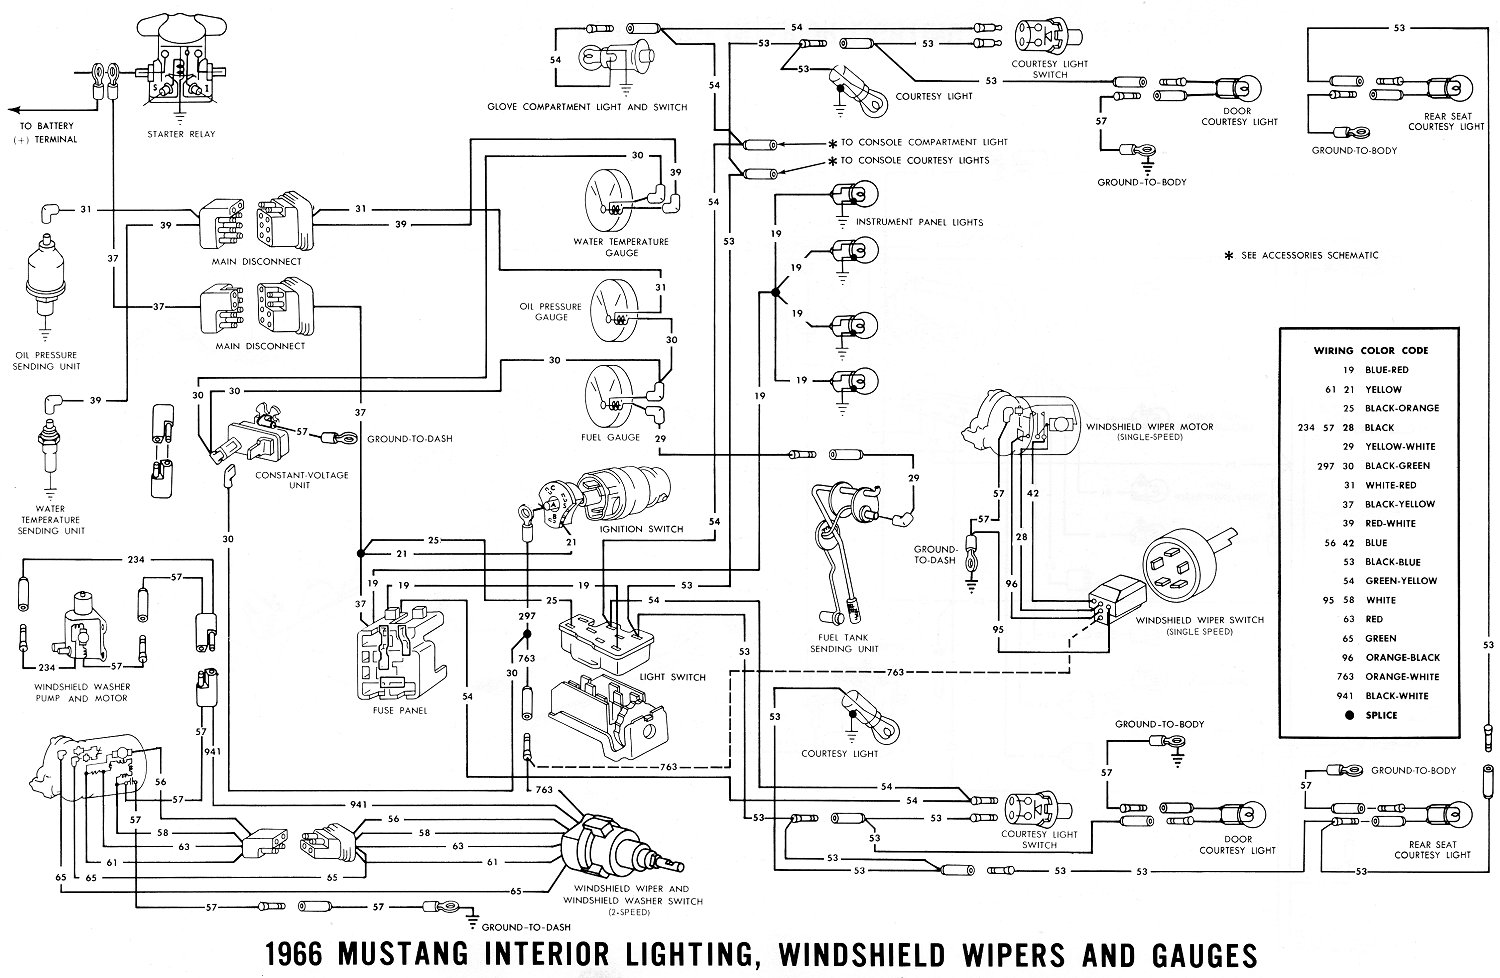 221942 1966 Mustang Underdash Wiring Problems Can You Identify These Plugs on dodge charger window diagram